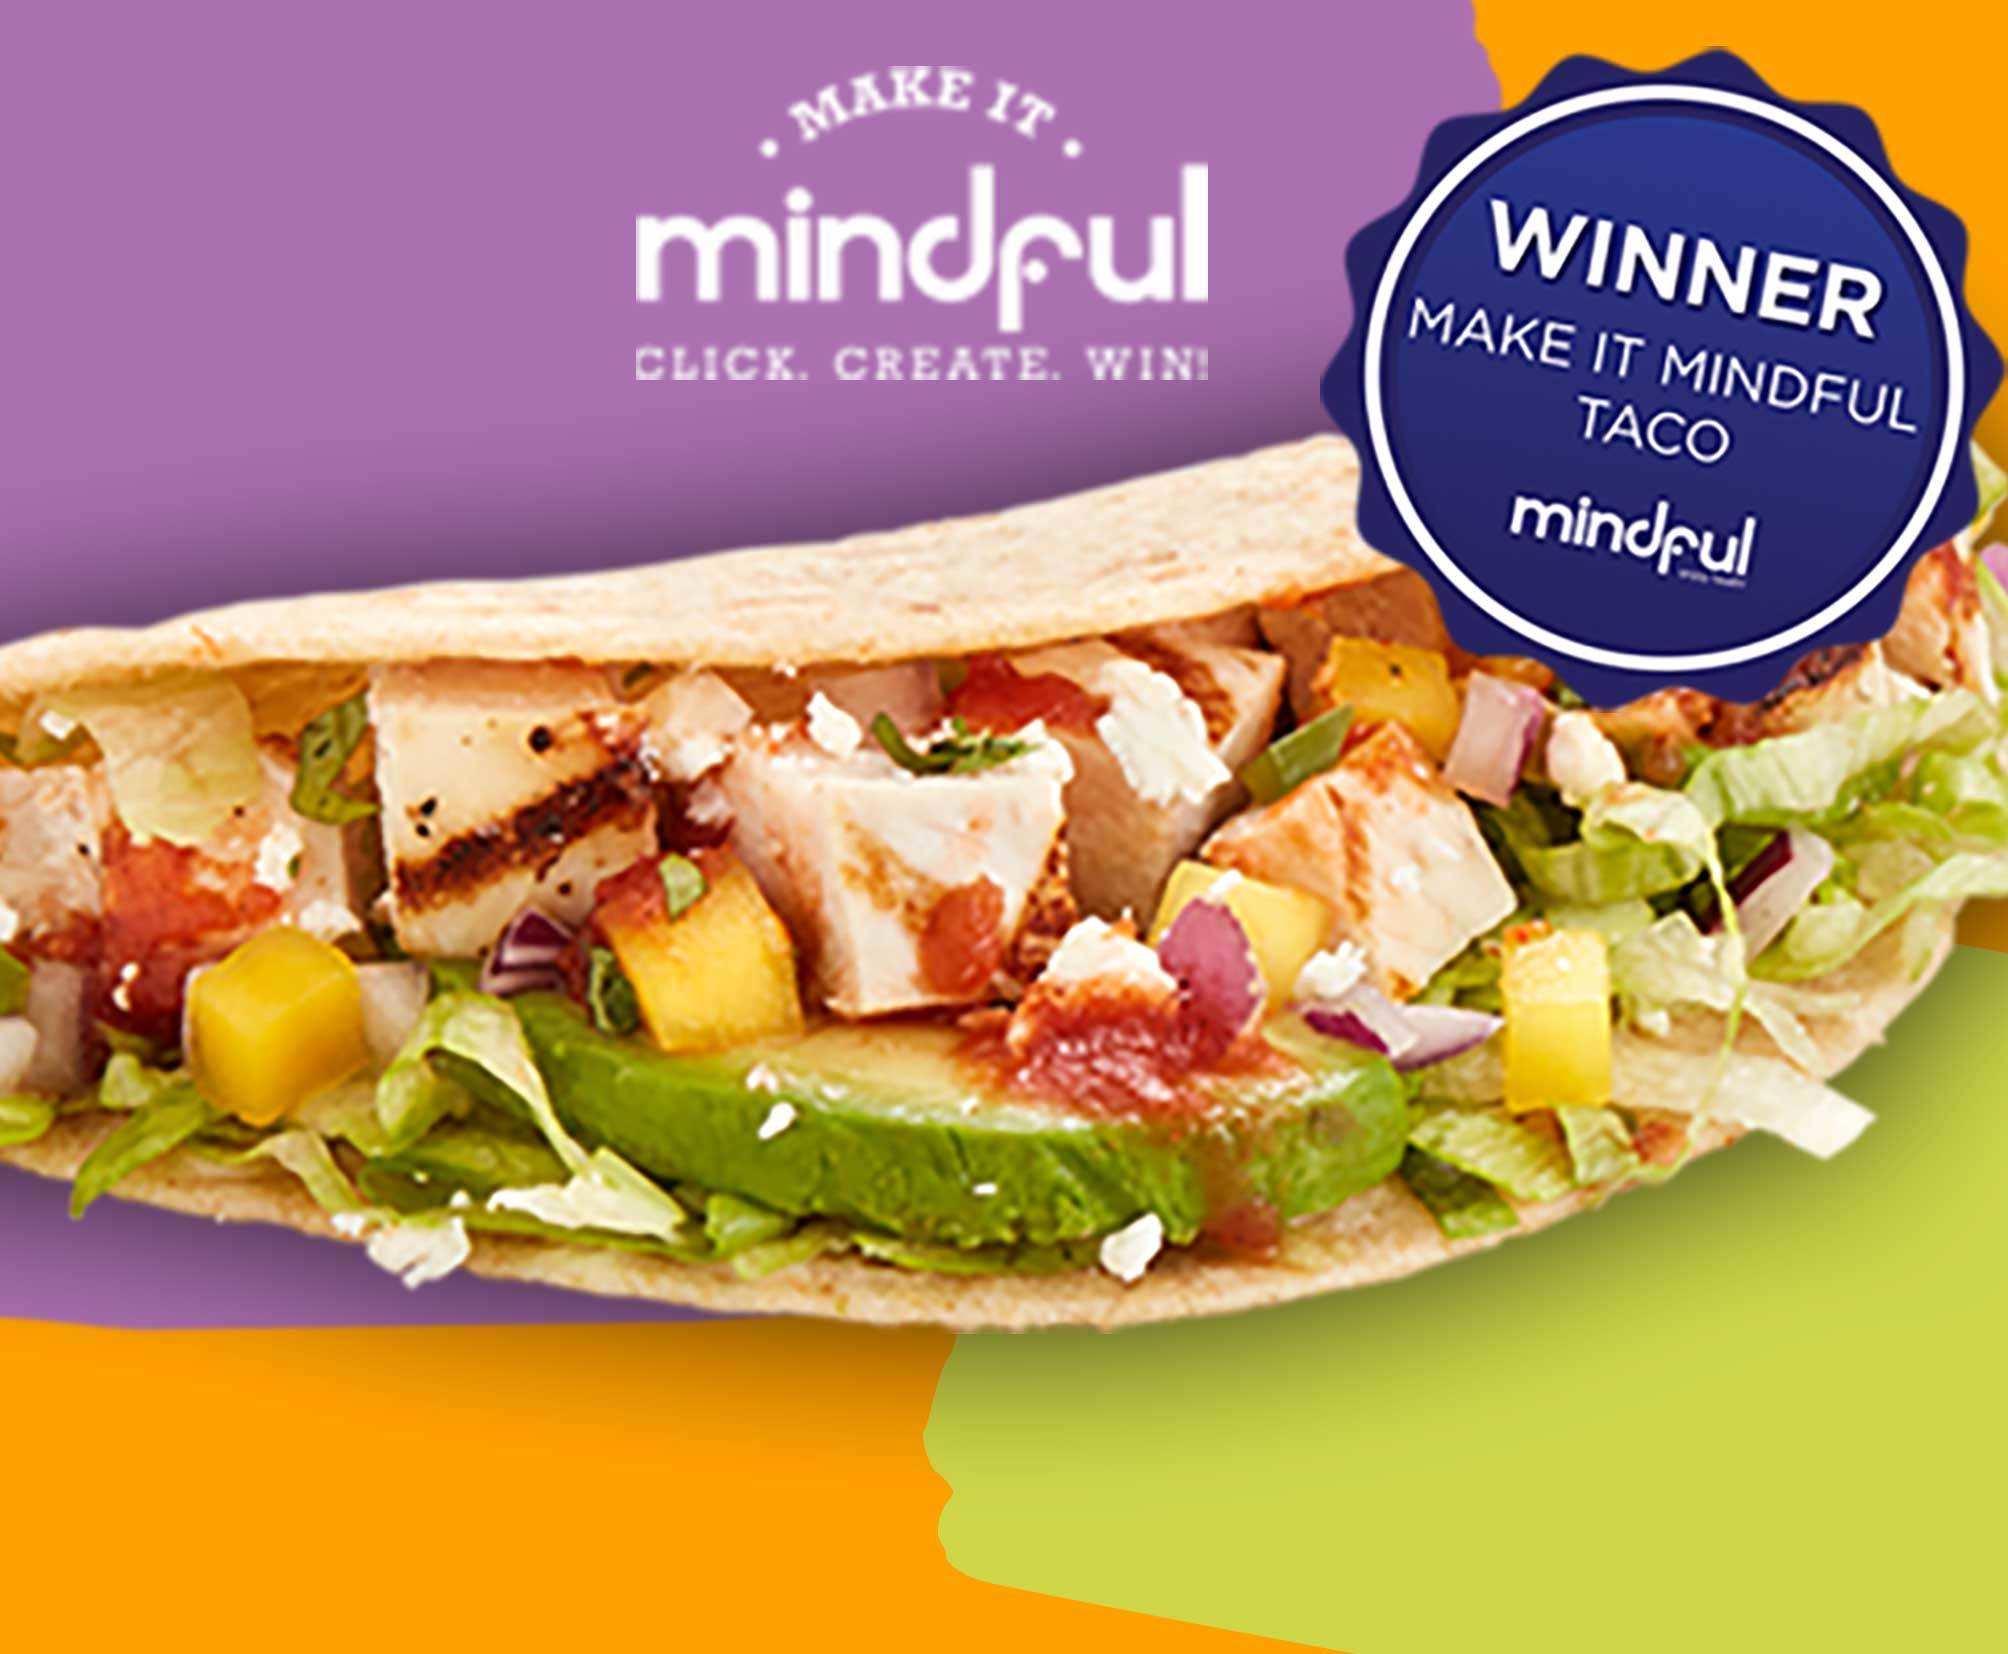 Make It Mindful Taco - Winner